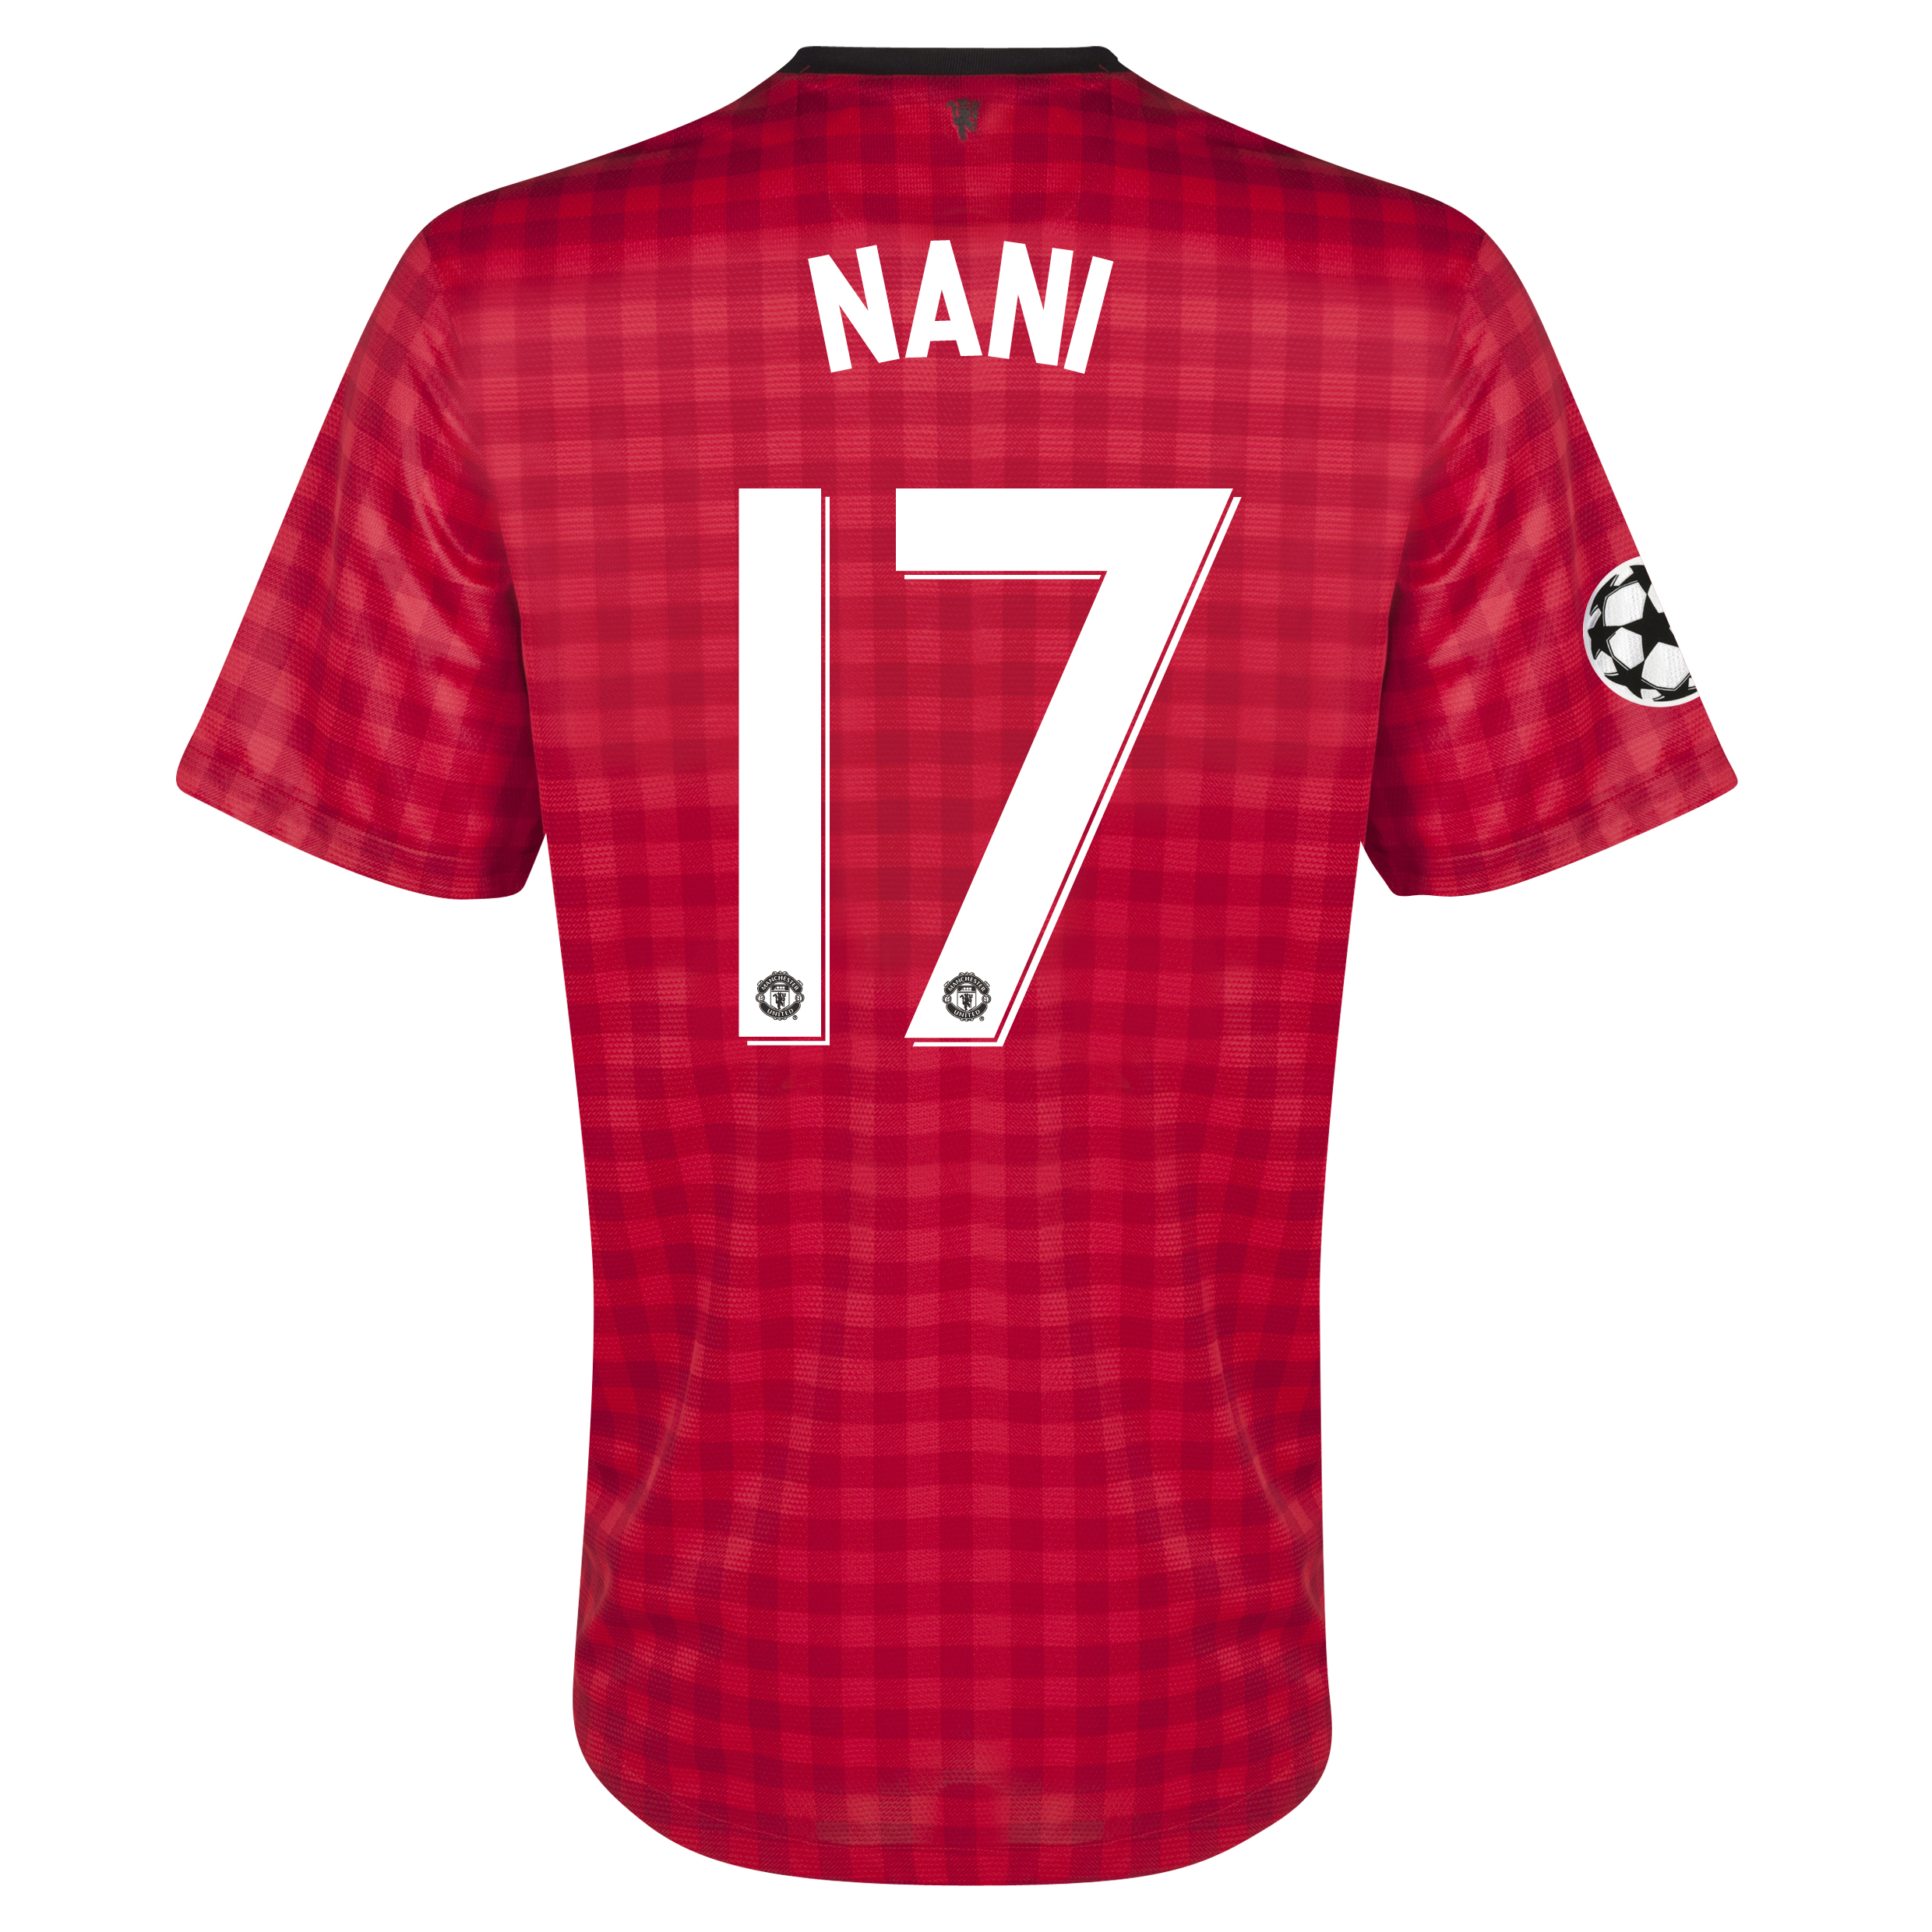 Manchester United UEFA Champions League Home Shirt 2012/13 - Kids with Nani 17 printing